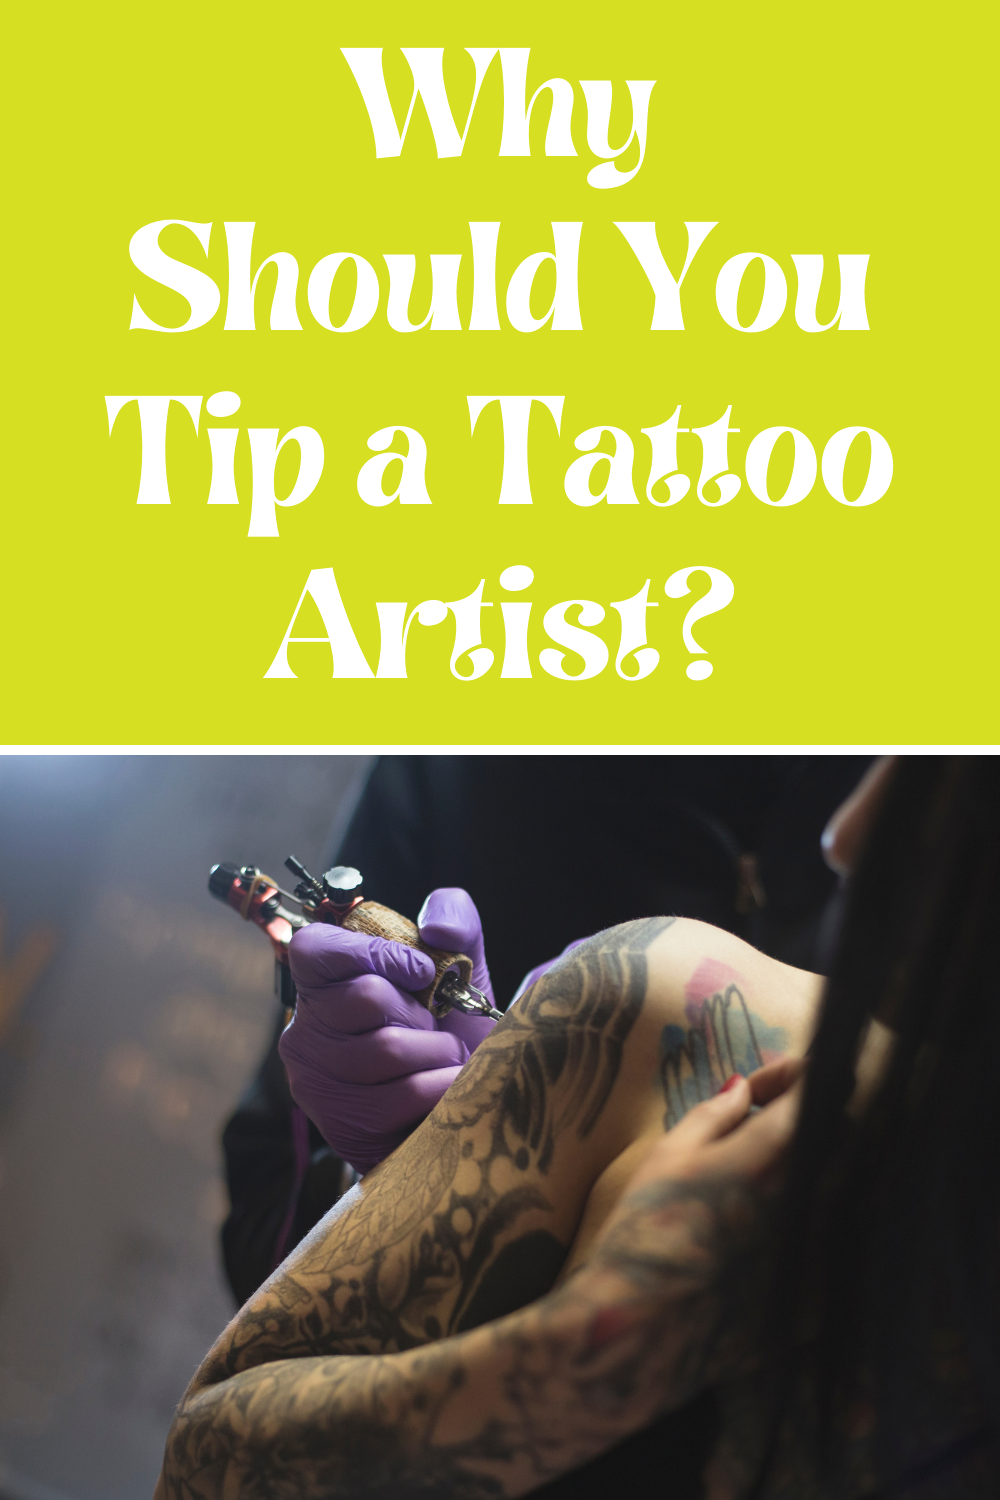 How Much to Tip Tattoo Artist Where You Live